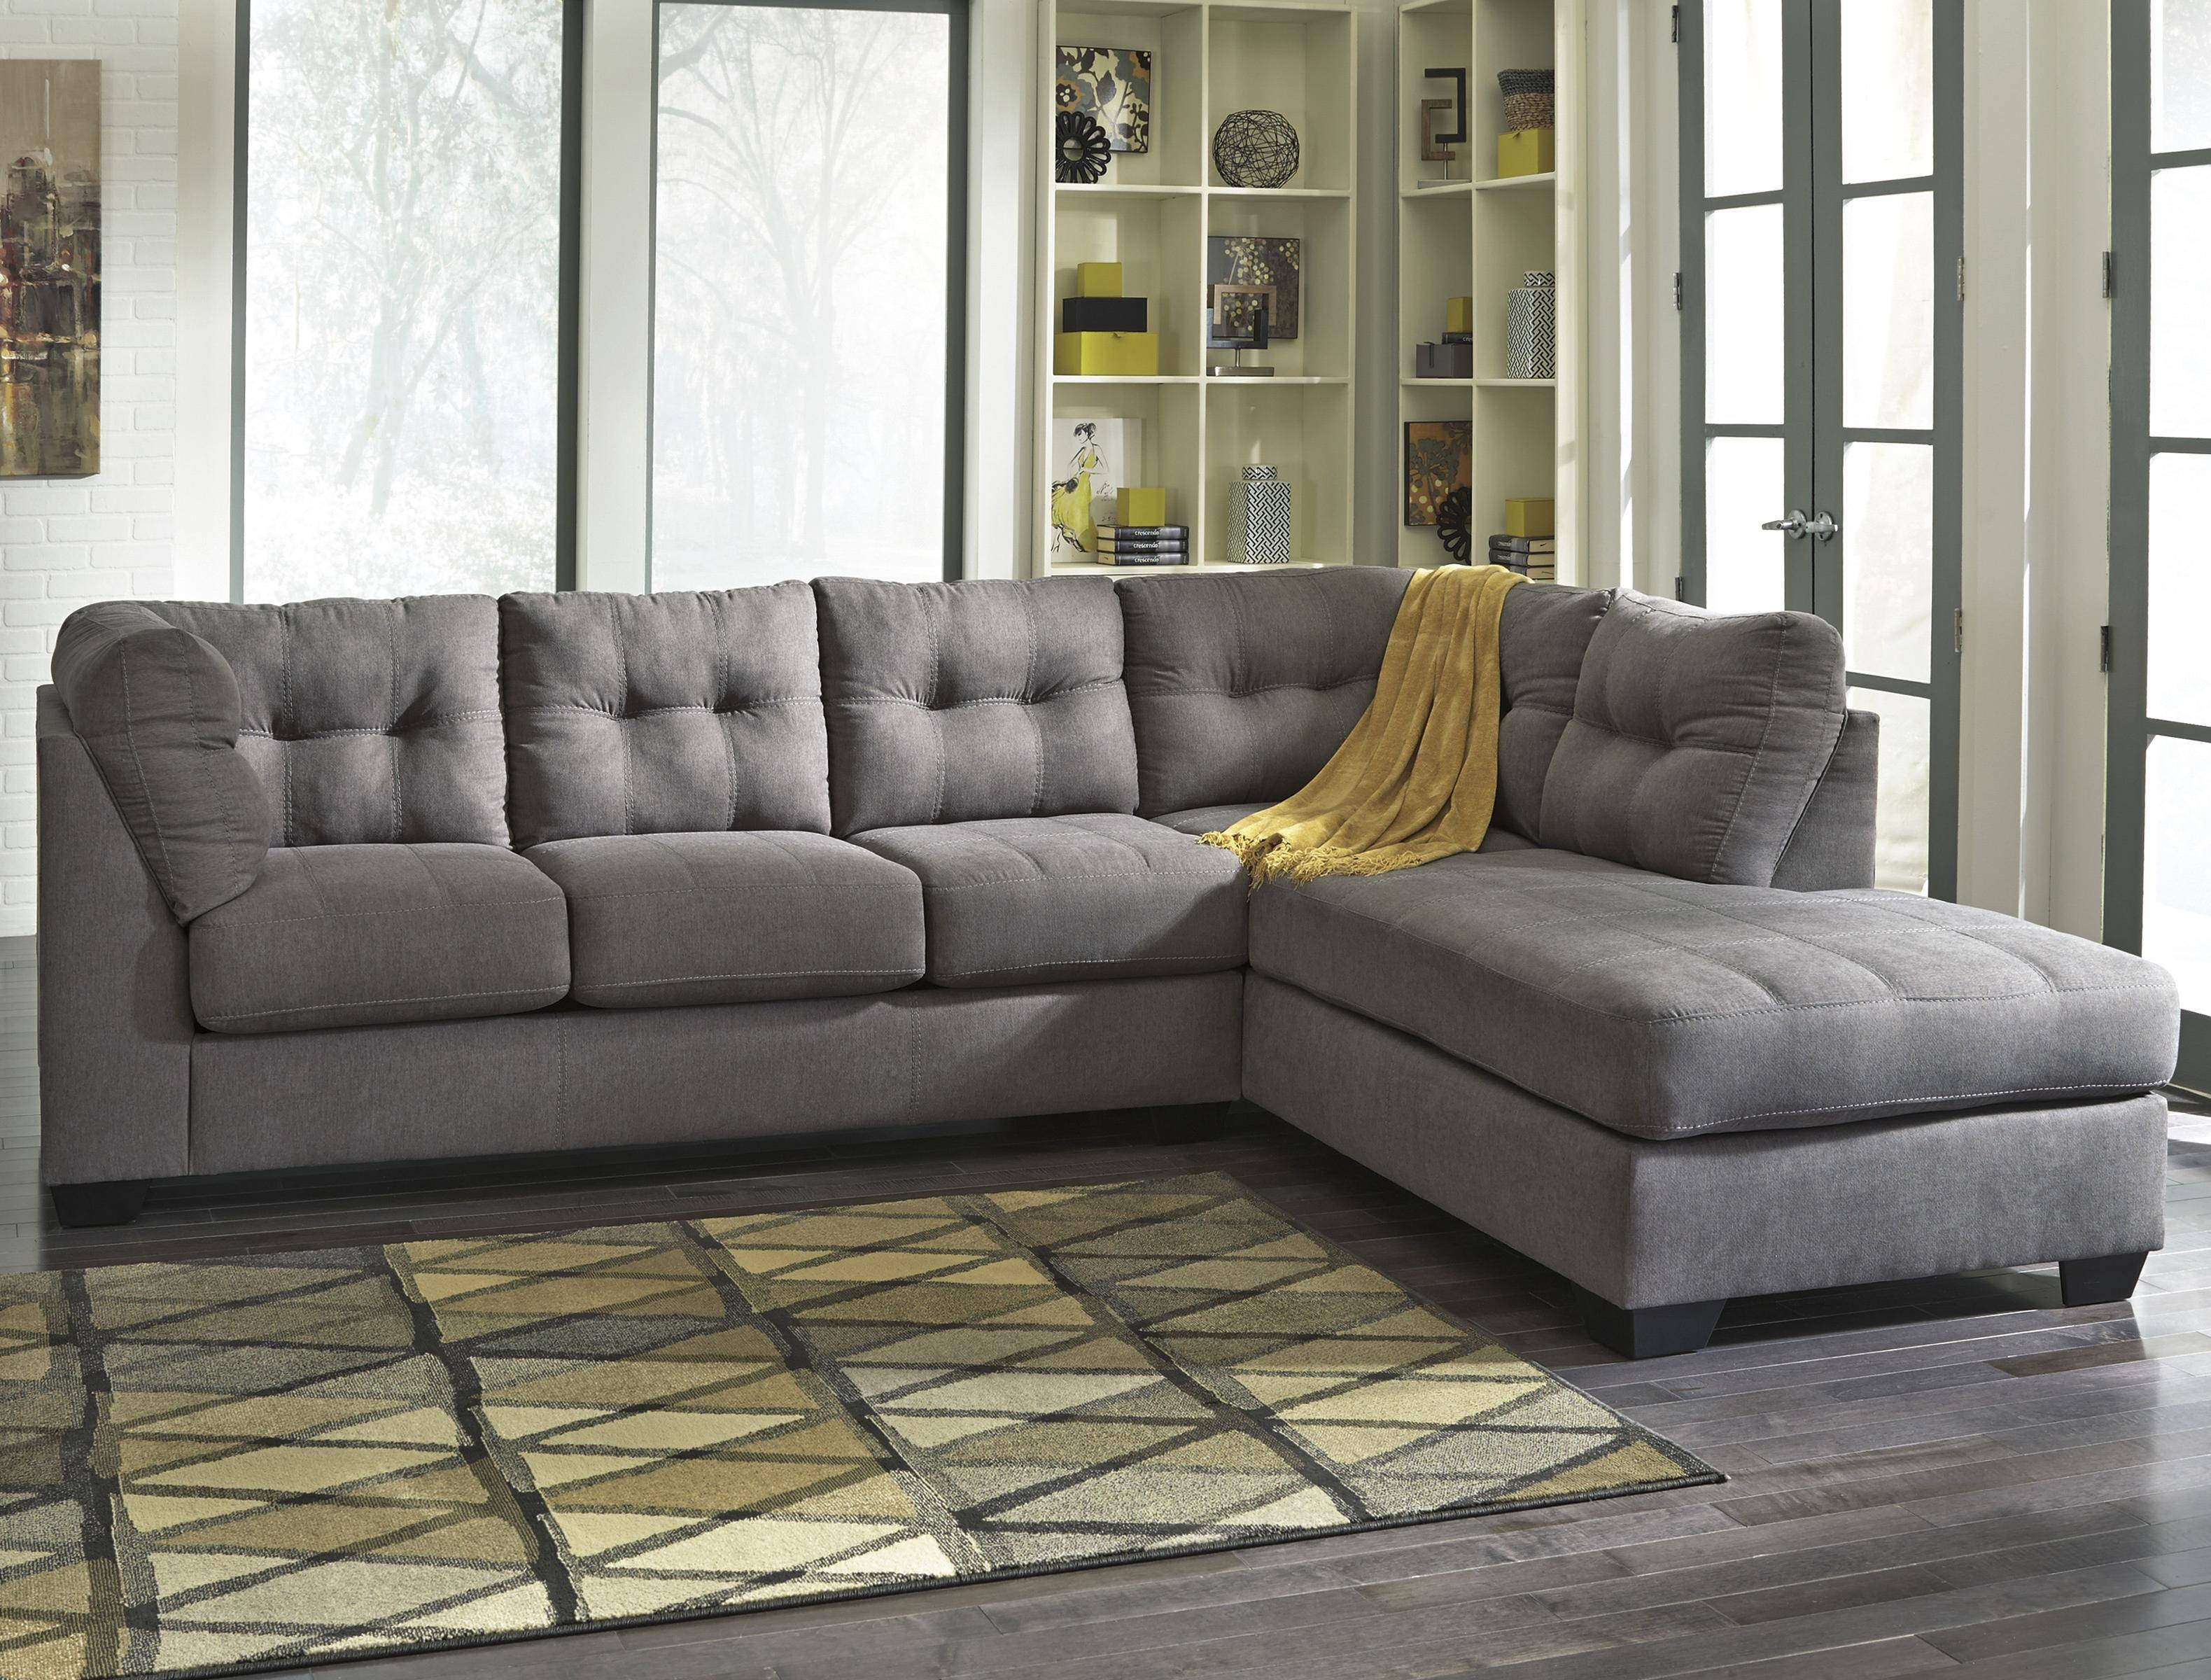 Living Room: Using Elegant Cindy Crawford Sectional Sofa For for Cindy Crawford Sectional Leather Sofas (Image 8 of 15)